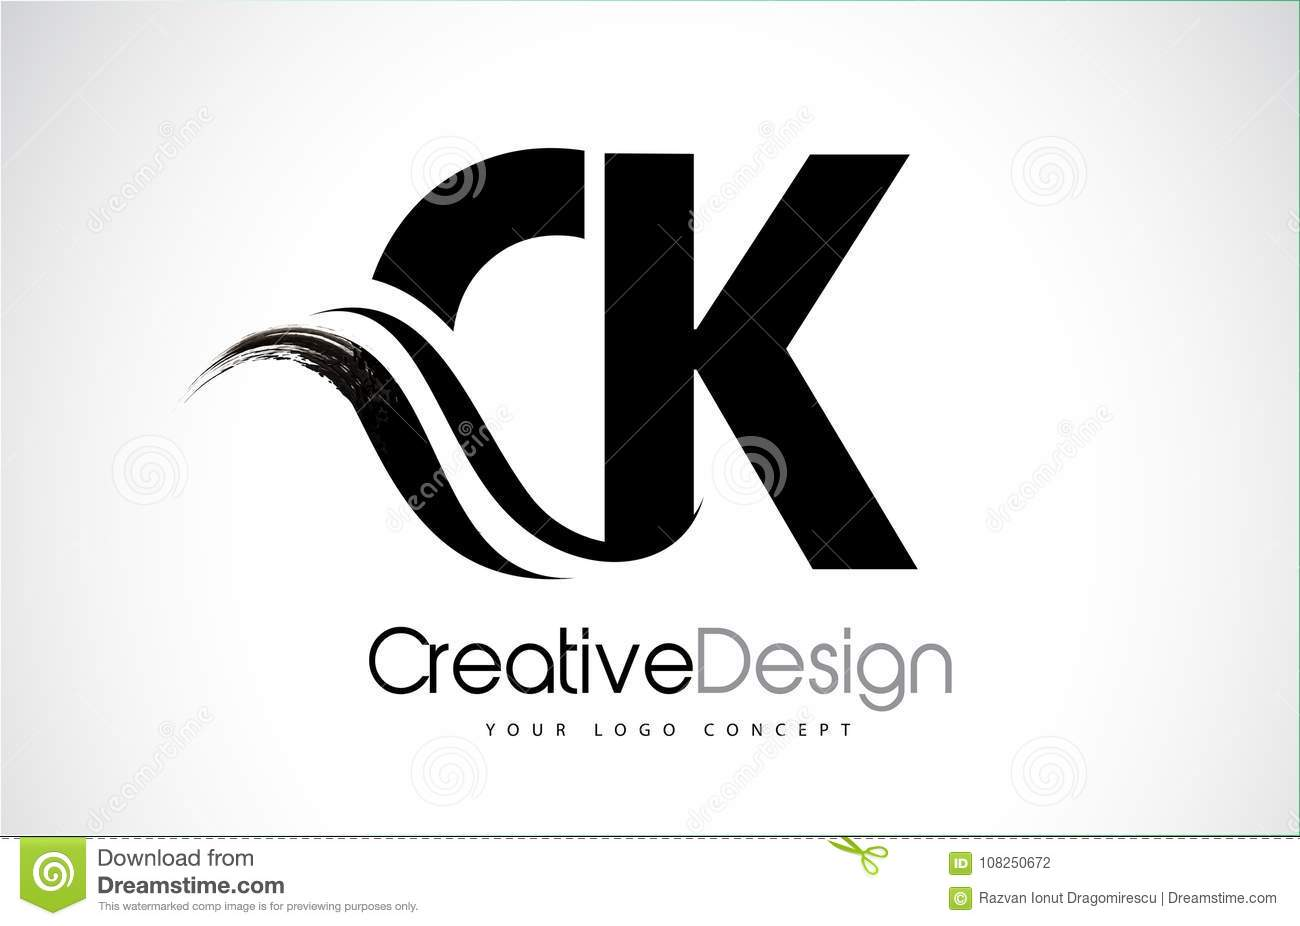 Download CK C K Creative Brush Black Letters Design With Swoosh Stock Vector